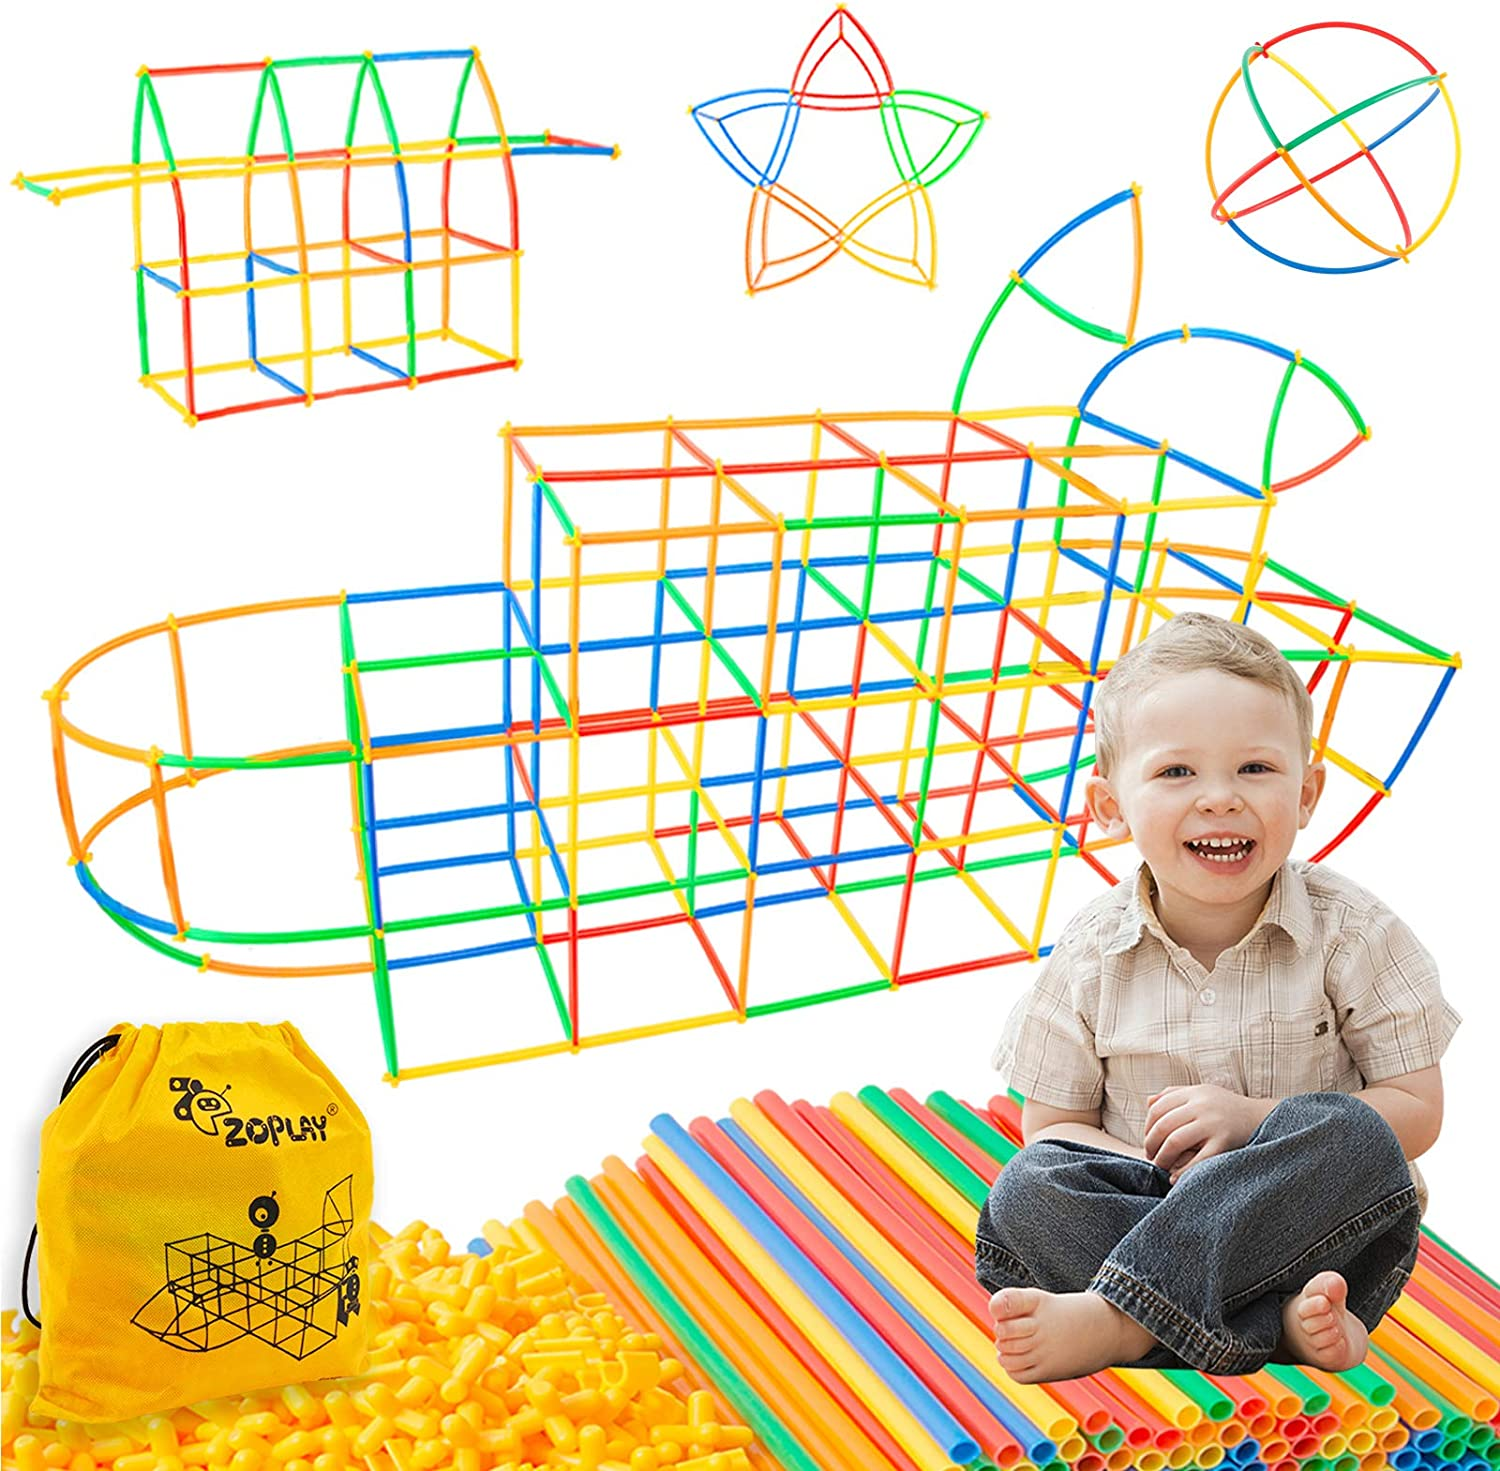 Straw Constructor Price reduction Stem Toys Free shipping on posting reviews 300 Connectors Building Straws Pcs F